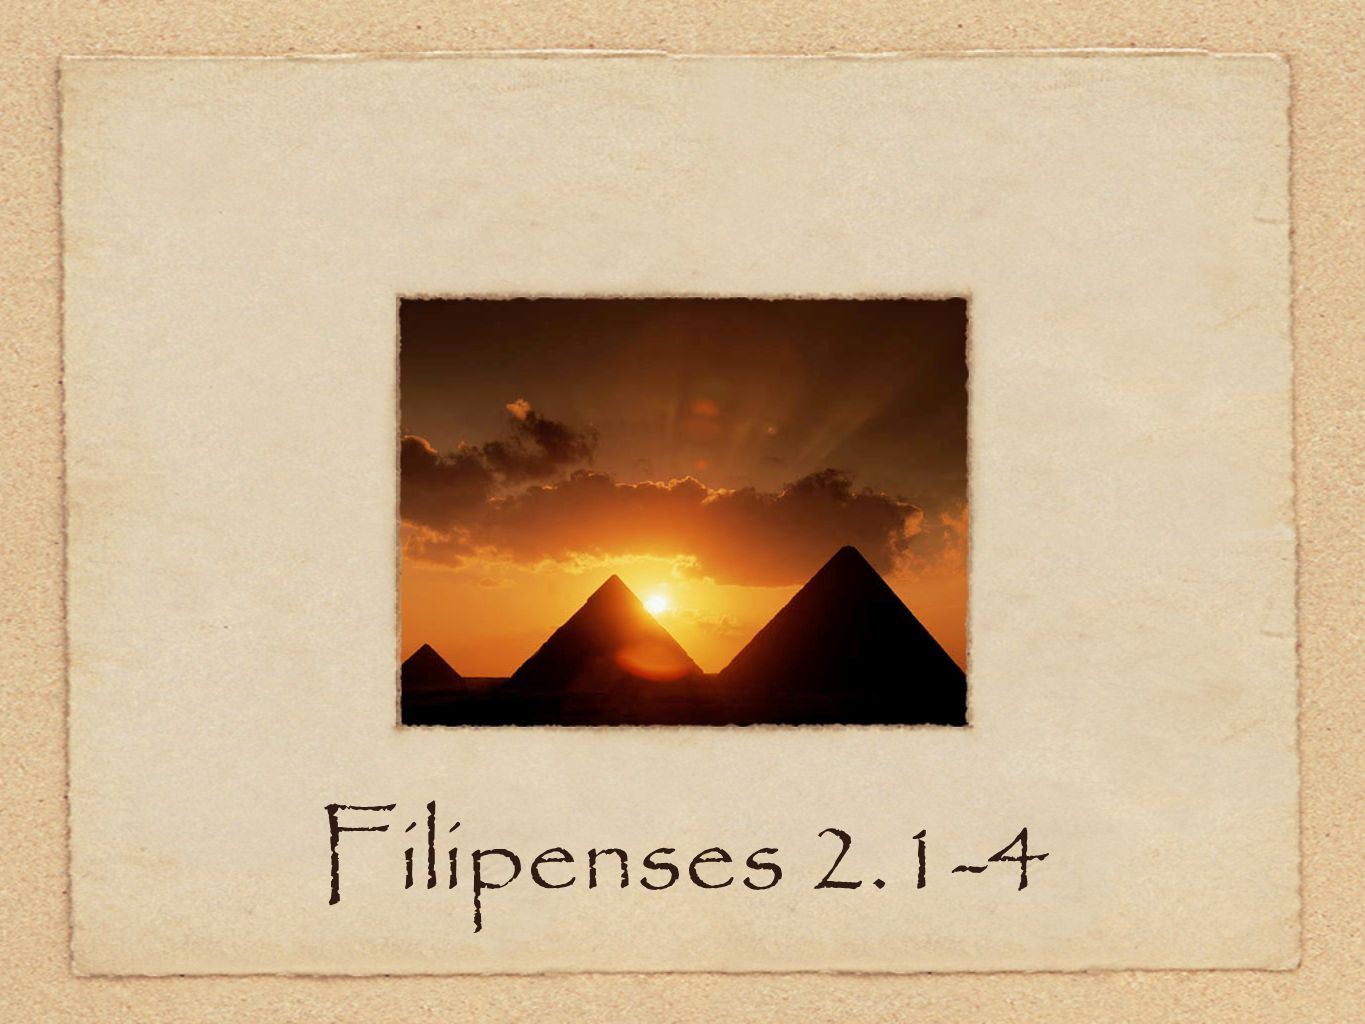 Filipenses 2.1-4